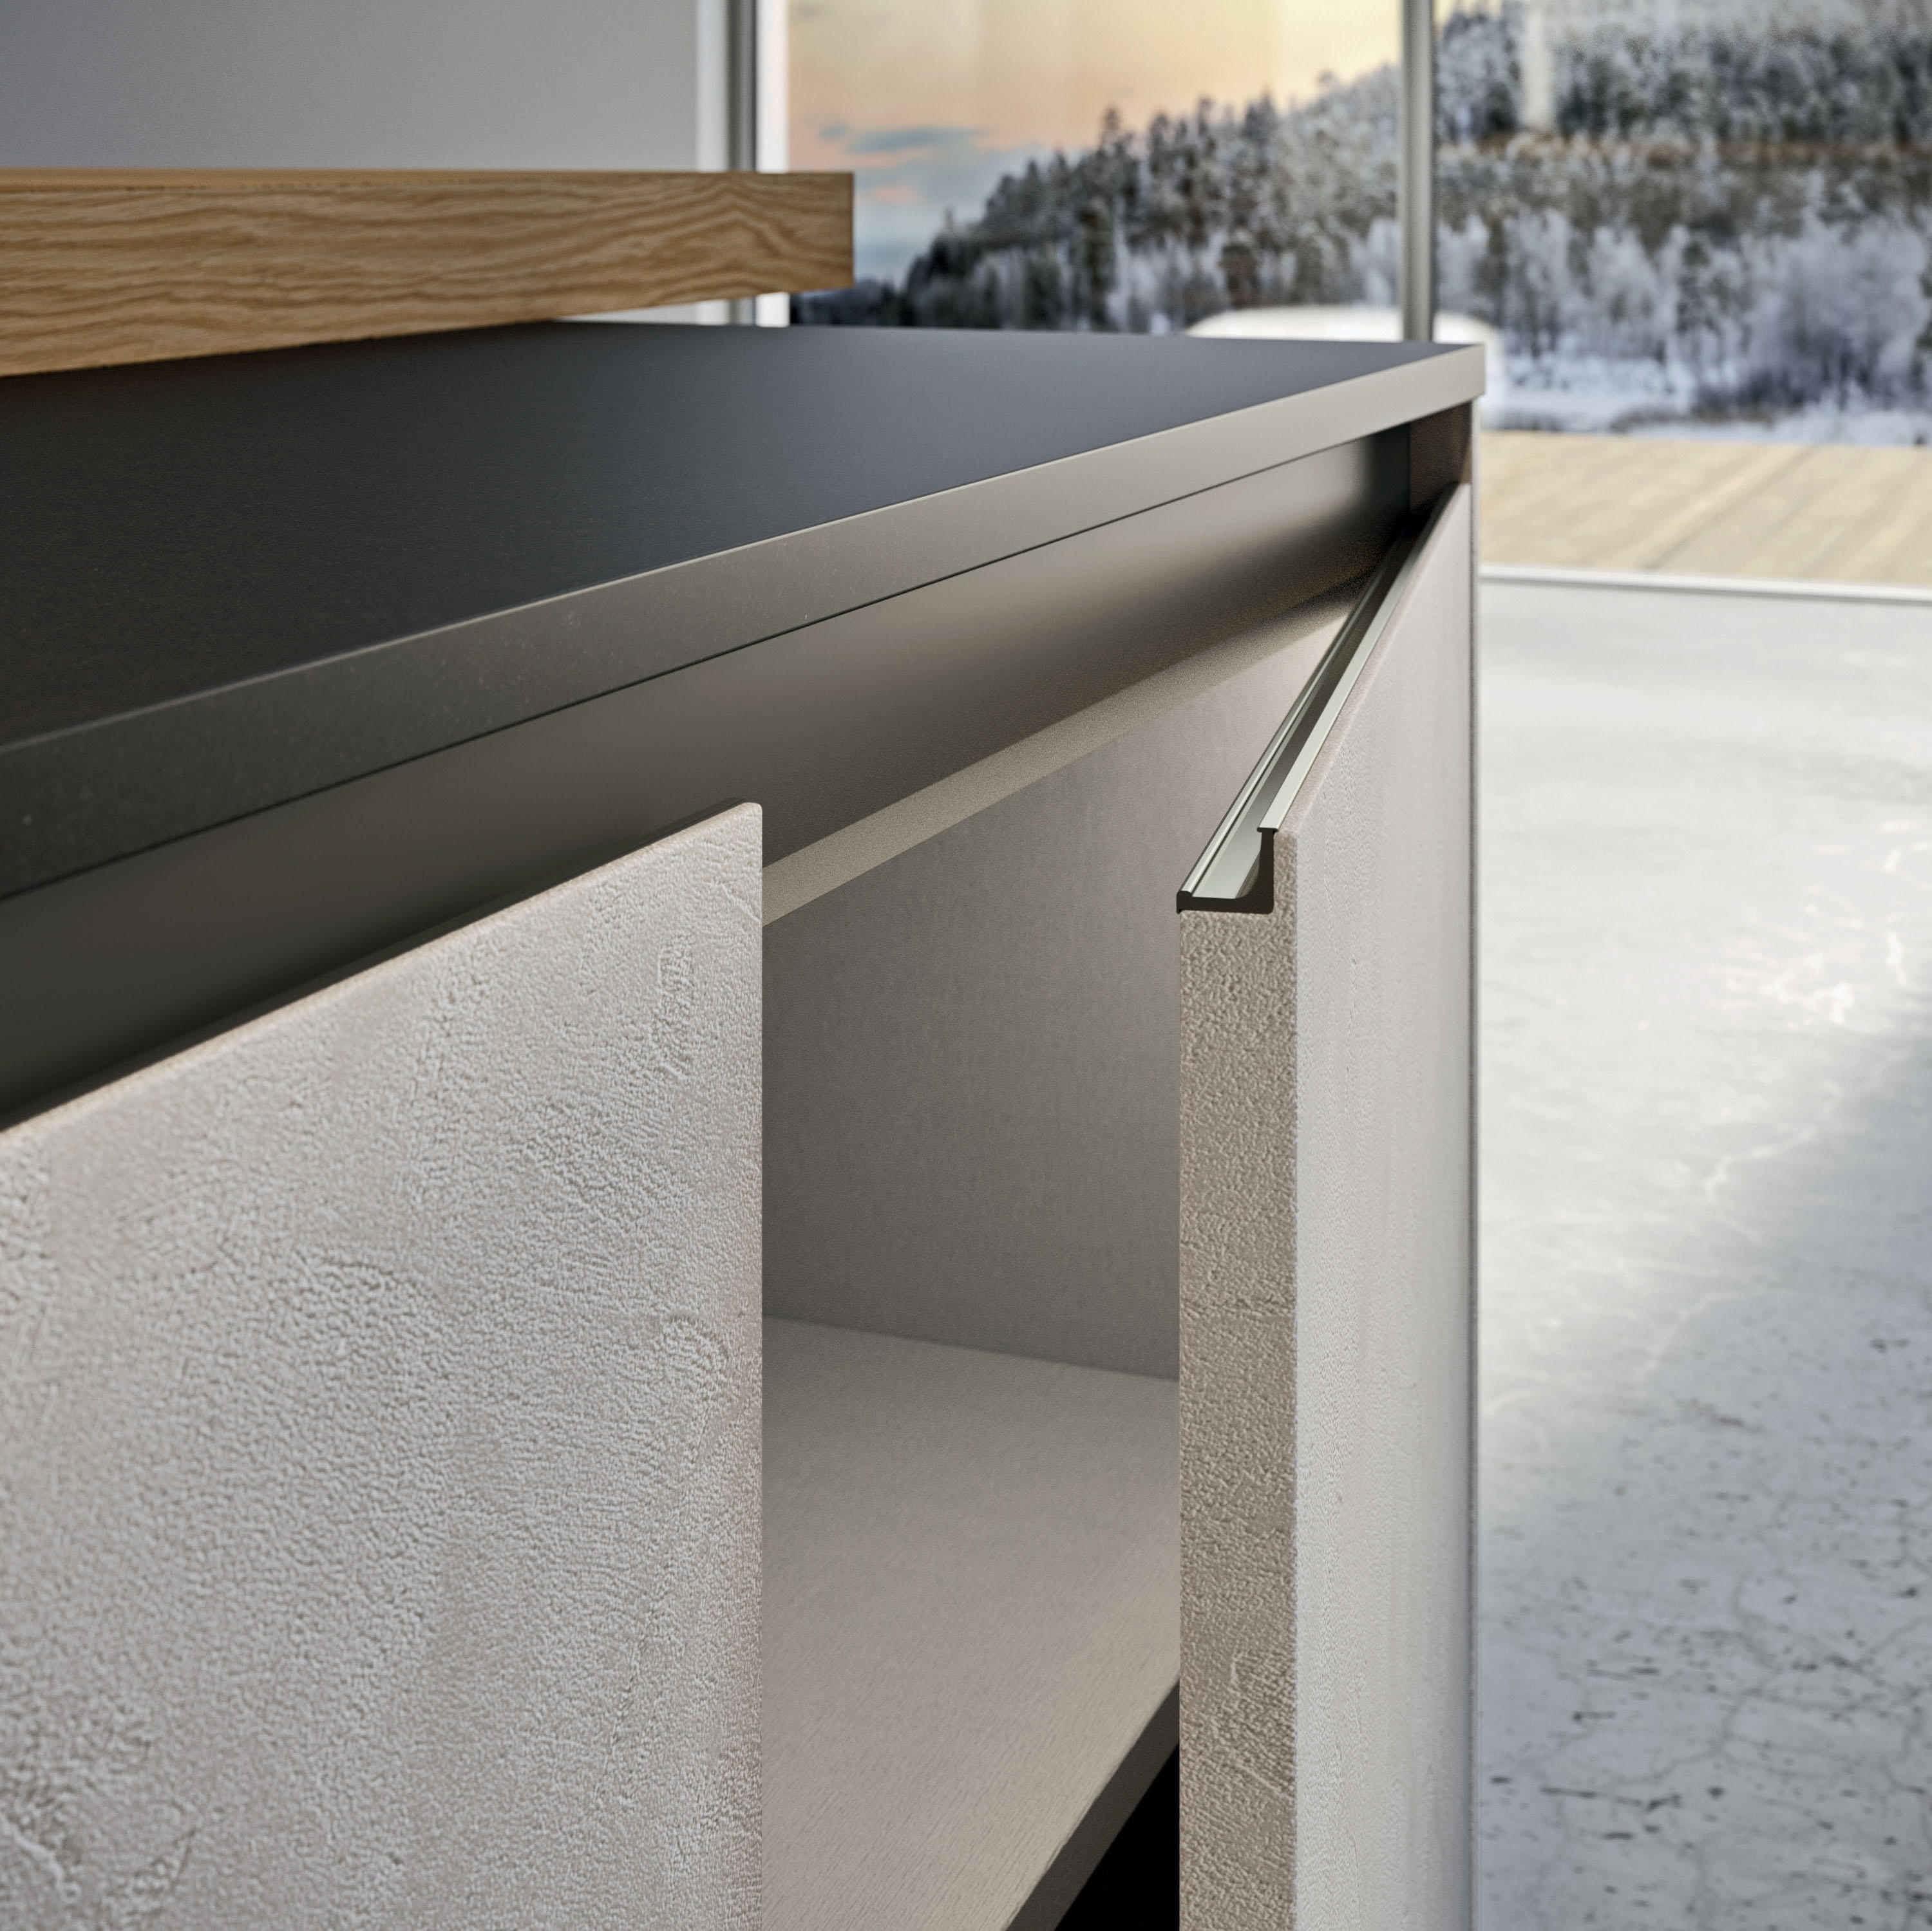 WAY - Cucine a parete Snaidero | Architonic